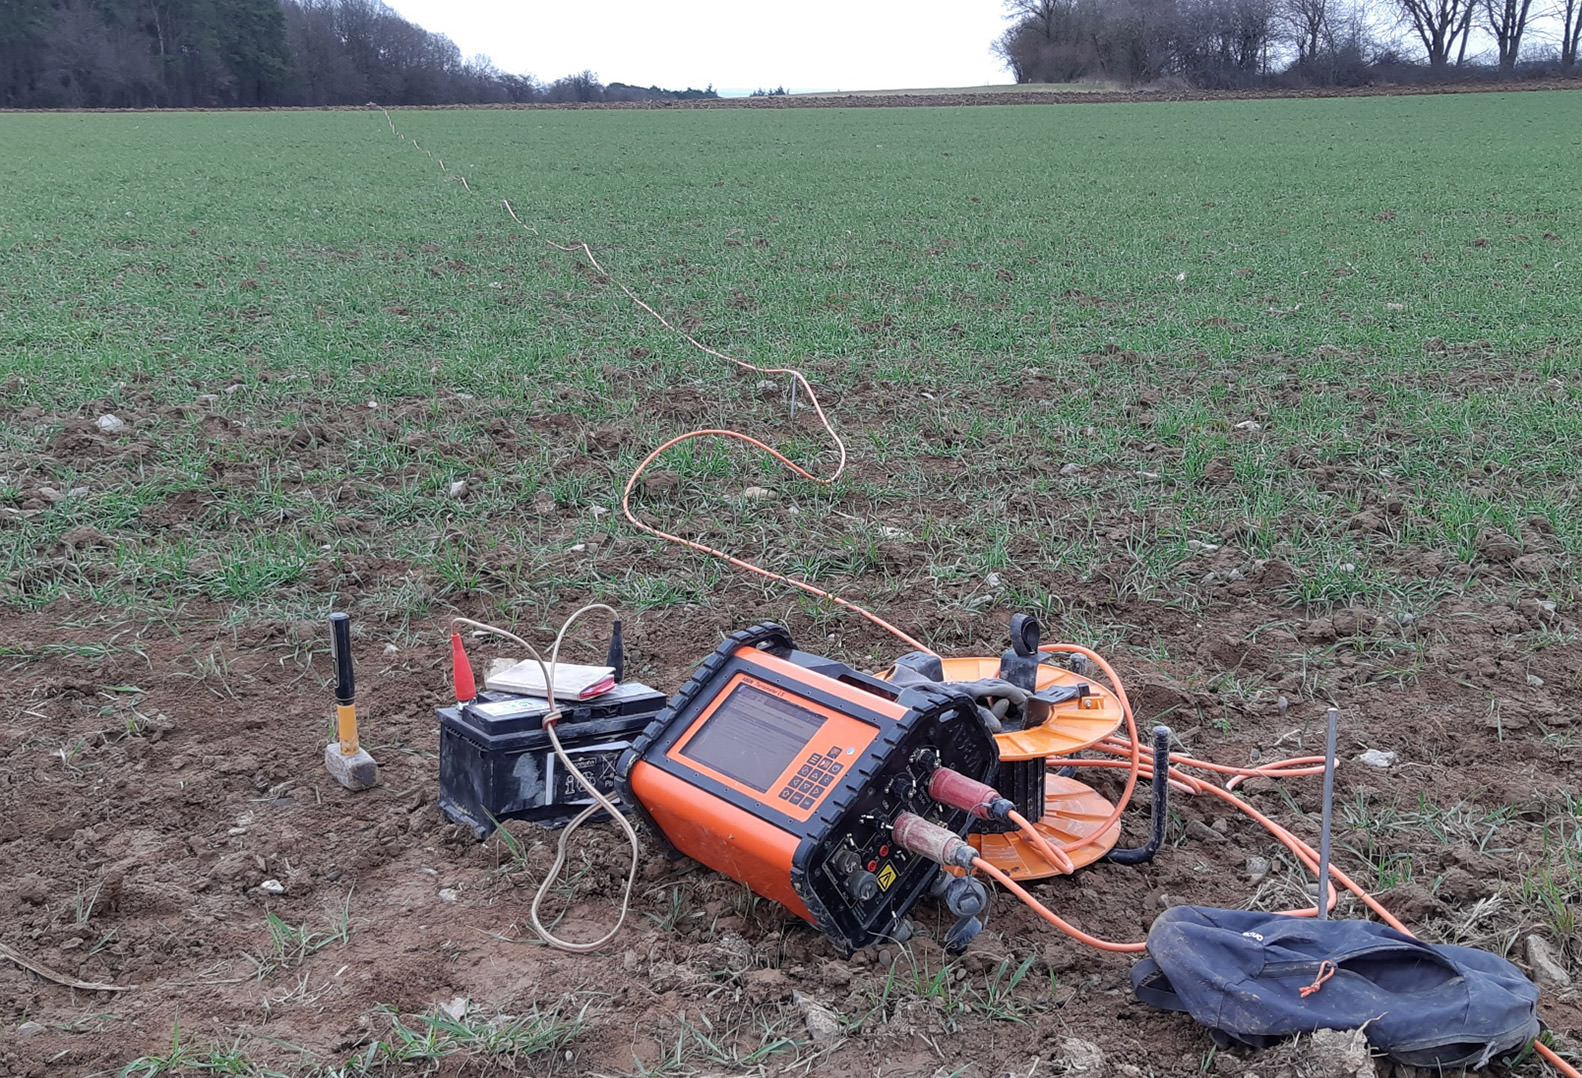 Instrument used for geophysical acquisition pictured on grass patch